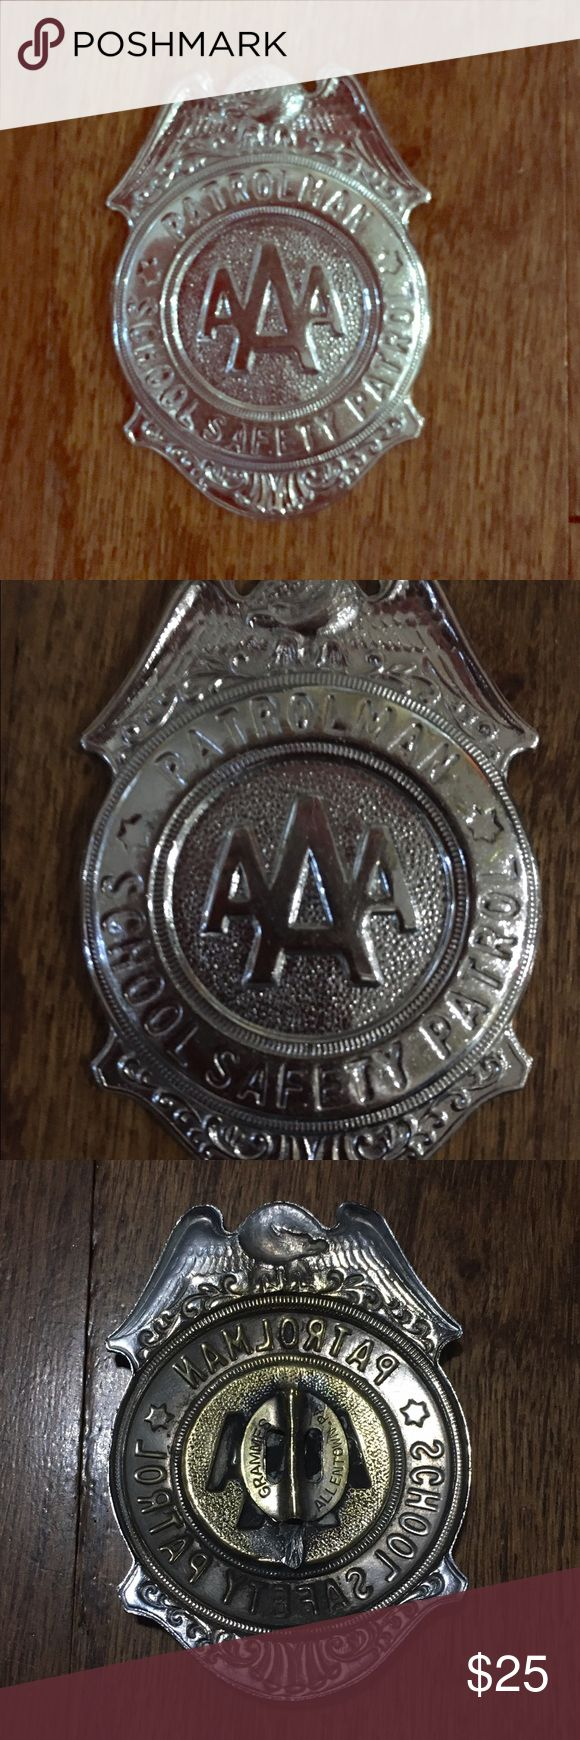 Vintage AAA Safety Patrol badge school This badge was made by Grammes in Allentown Pennsylvania. It's in good shape but is missing the pin. A large safety pin works just fine. Please take a look at all of my items for more cool pins and other great finds. Thanks. Vintage Accessories